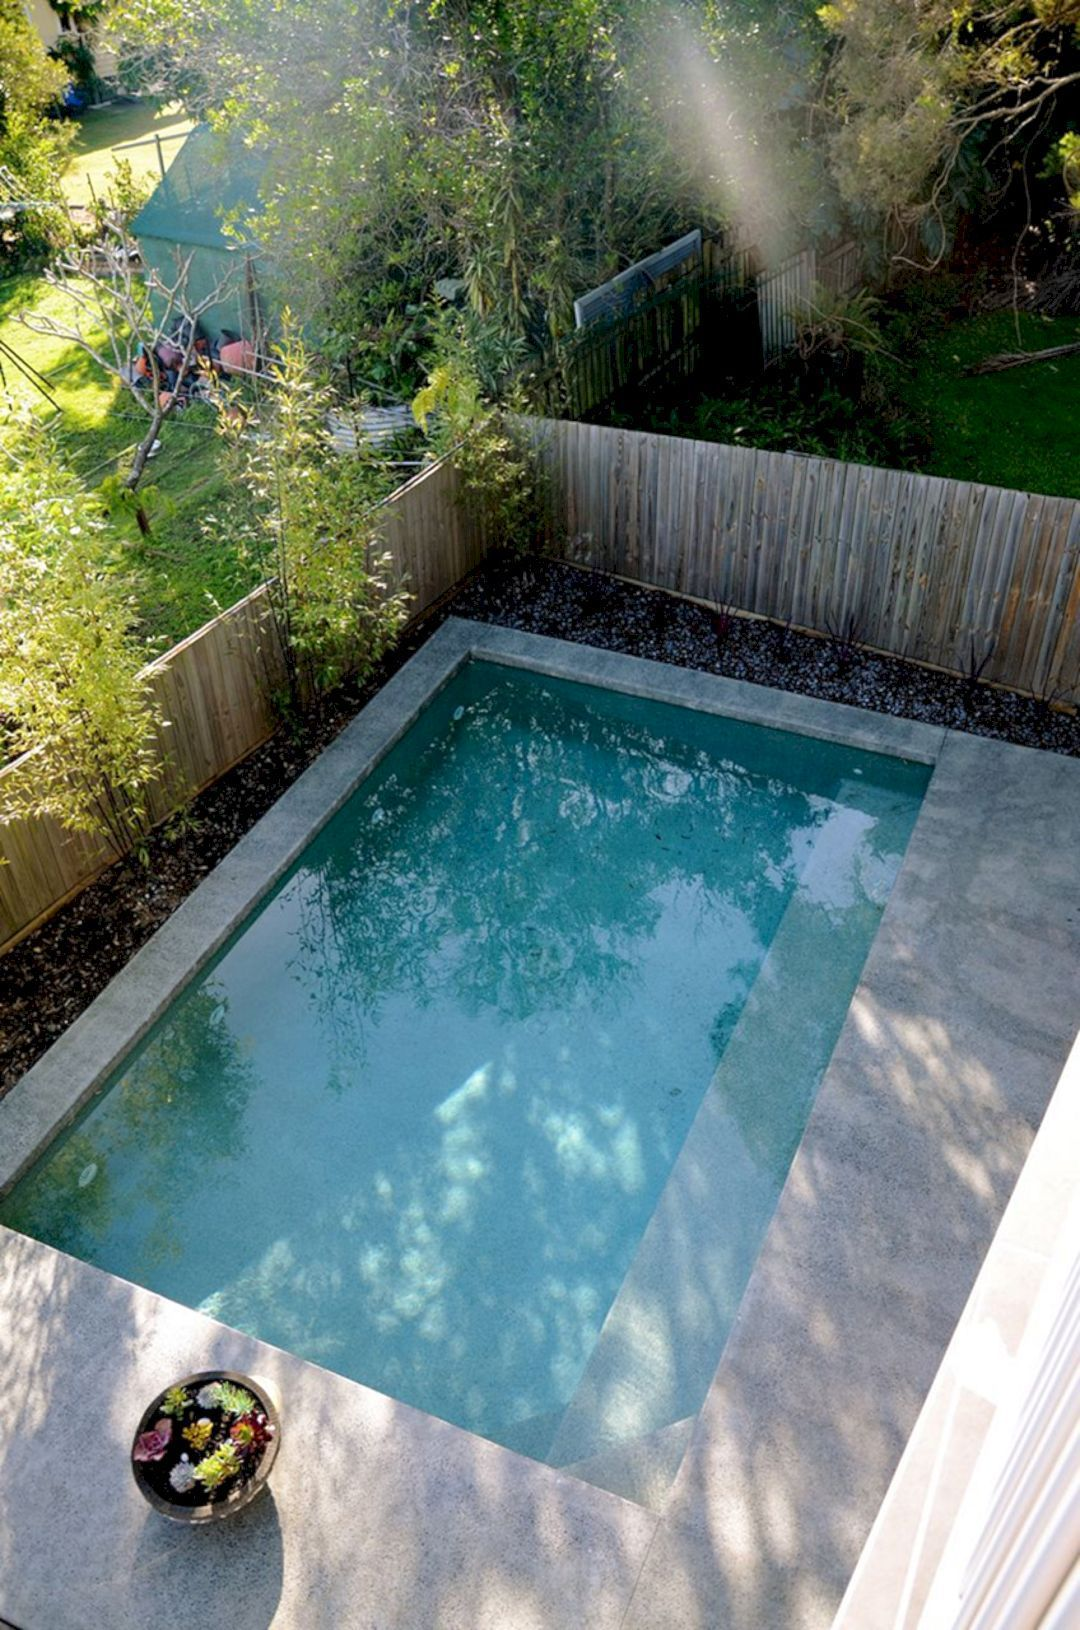 I Like The Size Of This Pool   Coolest Small Pool Idea For Backyard 34